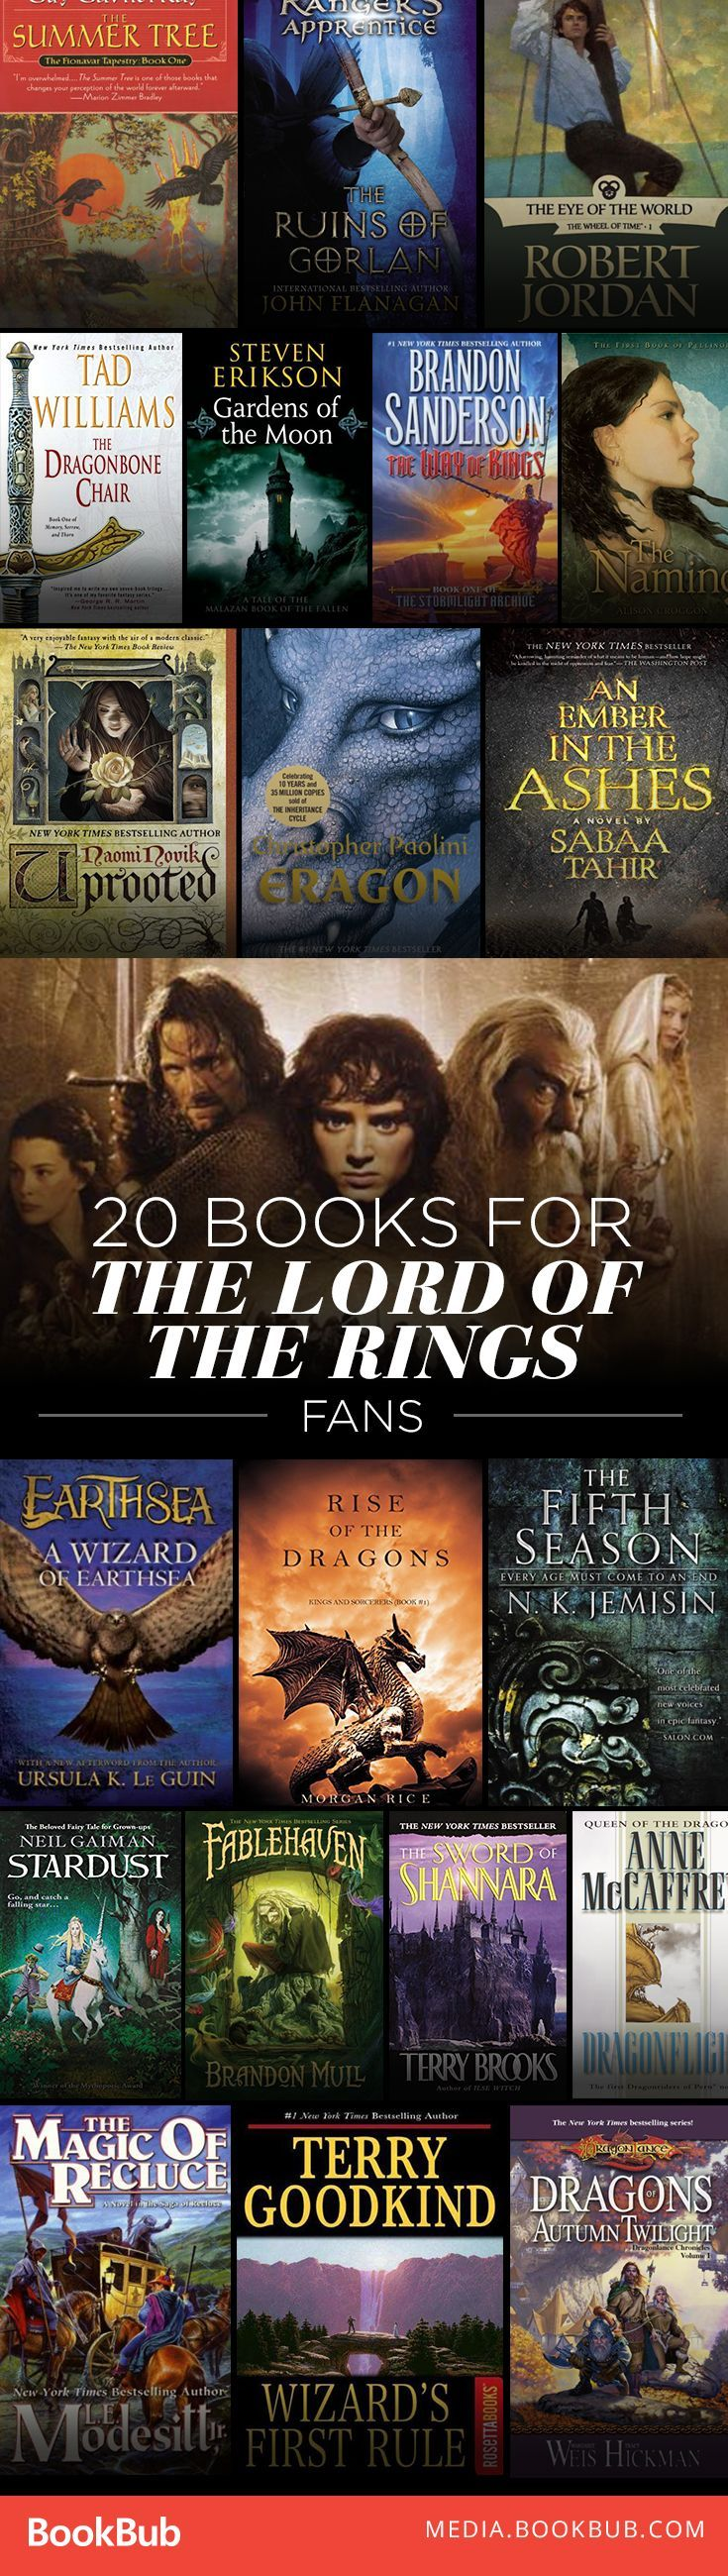 A giant list of epic fantasy books to read if you love Lord of the Rings. This is a must-save list!